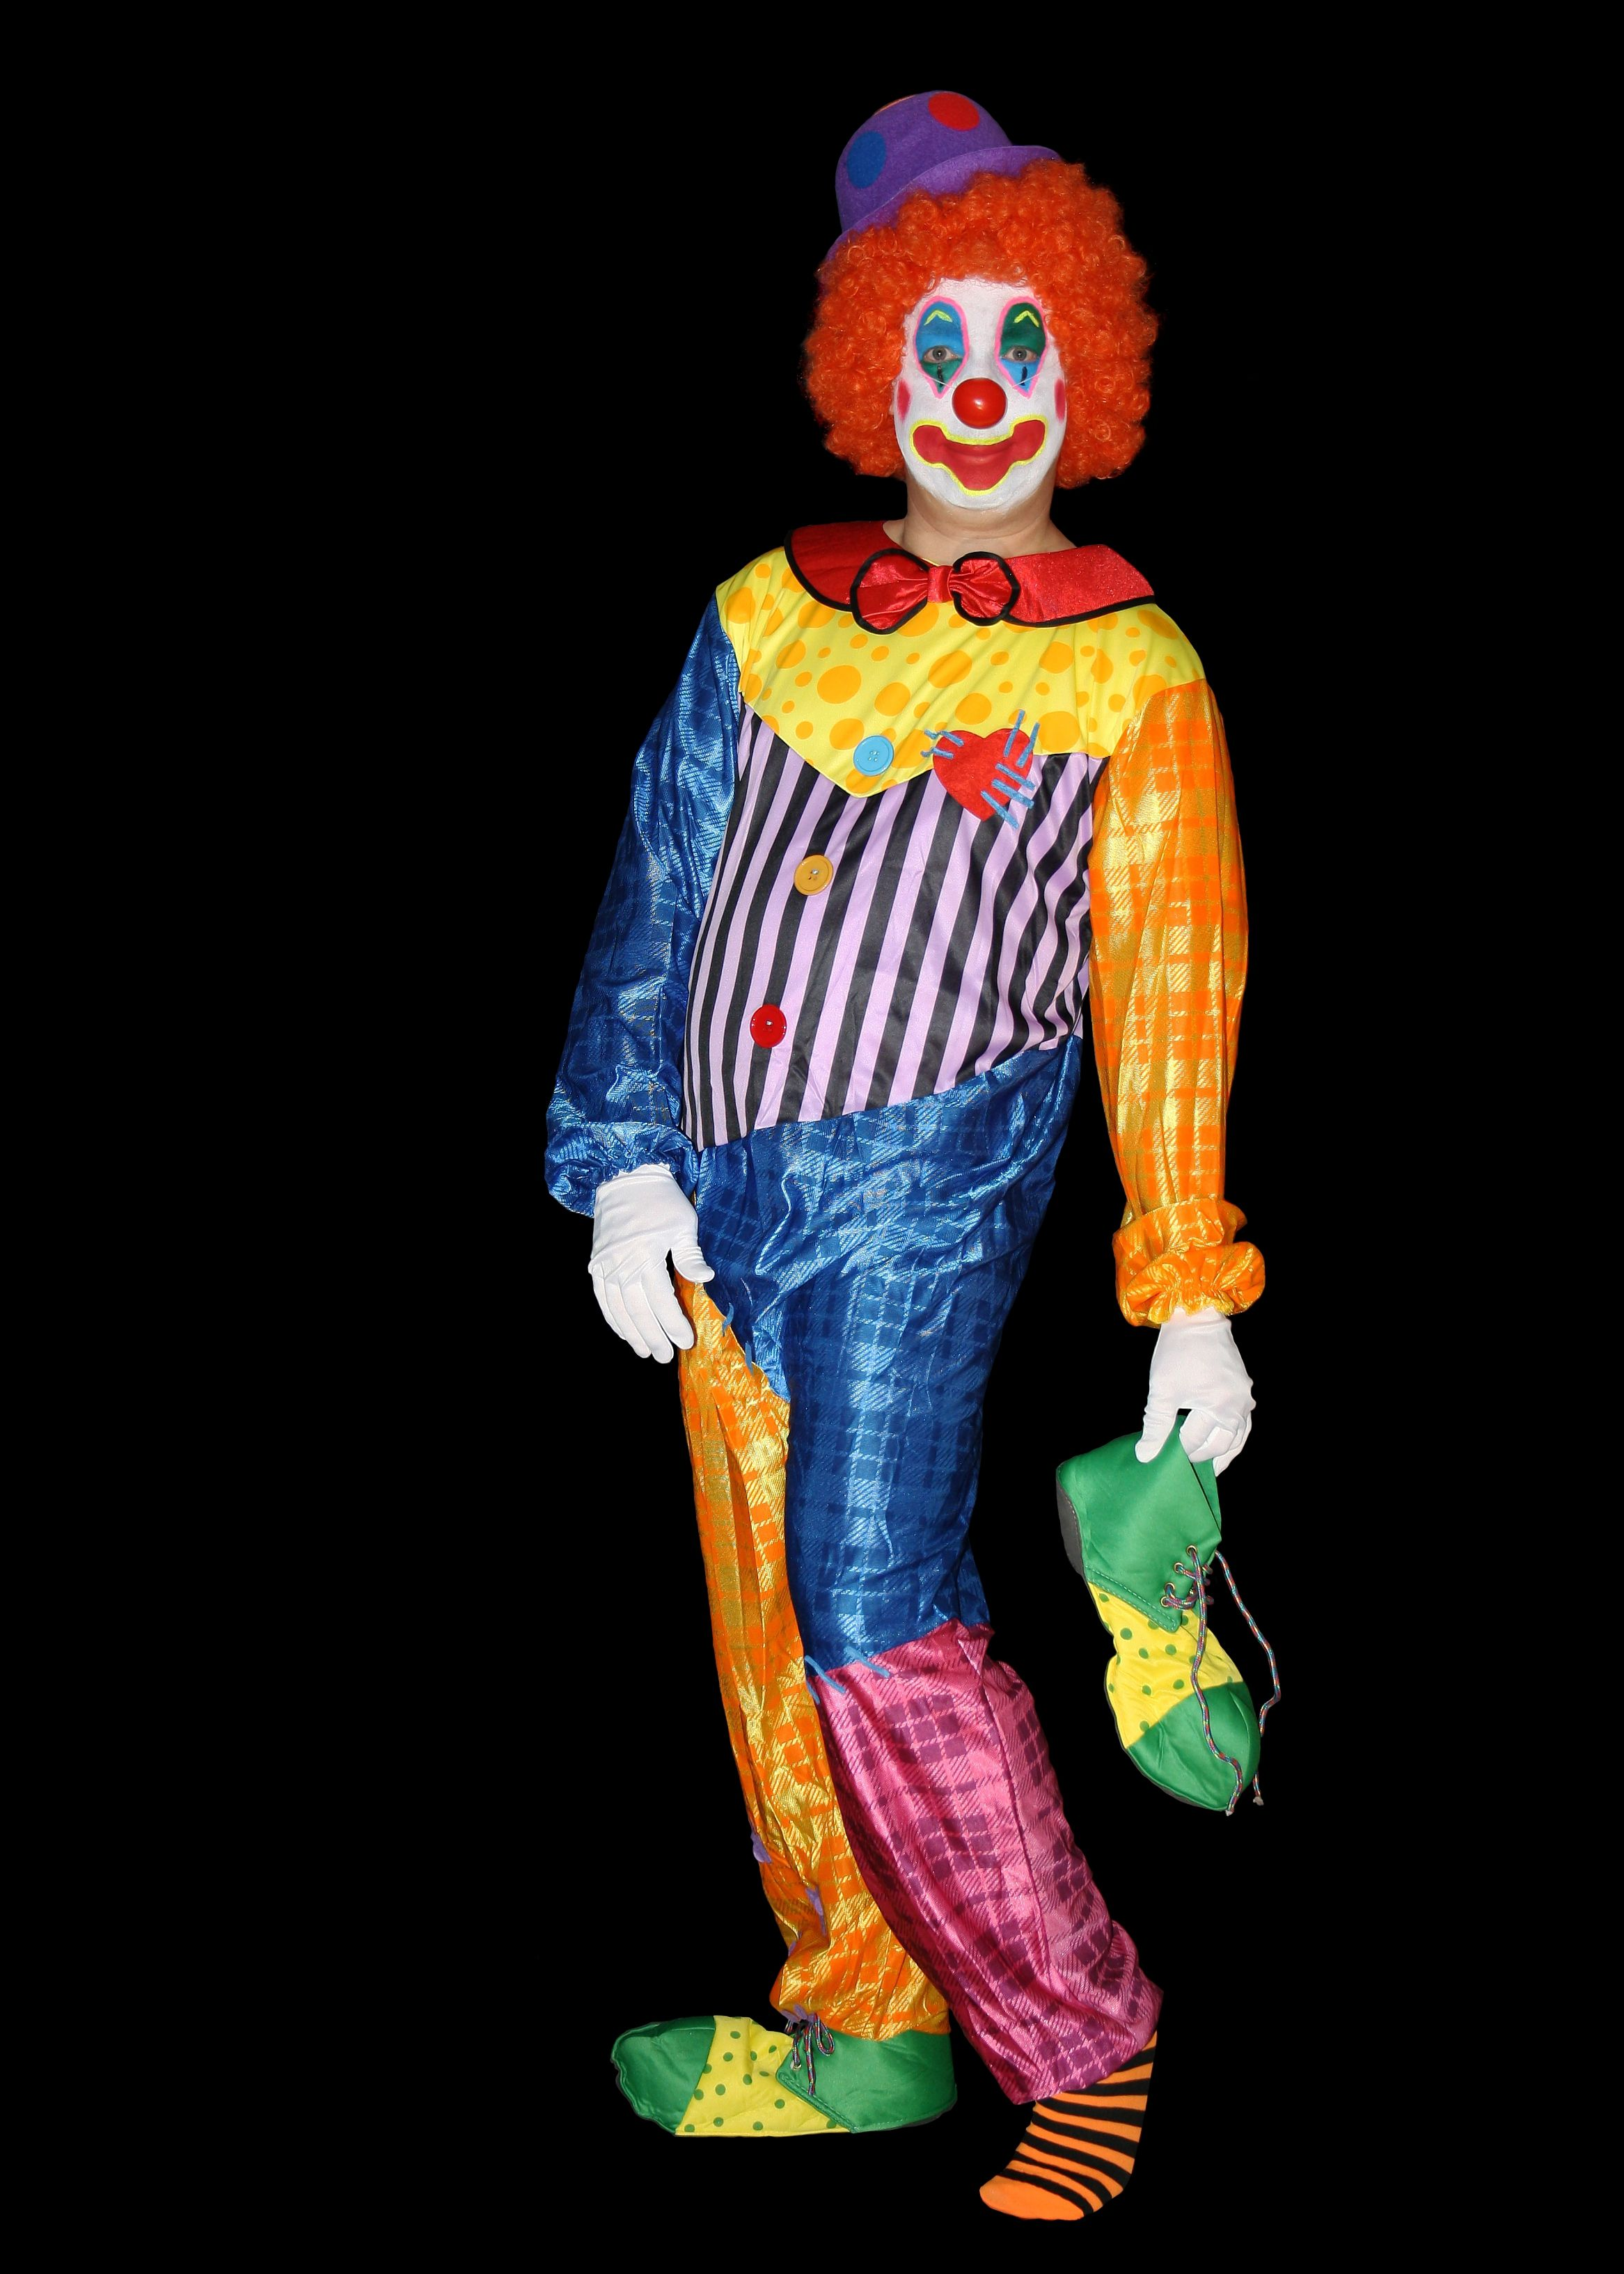 Clown Costume Circus Makeup Disguiese Colorful Face Painting Carnival Party Fun Funny Cc0 Public Domain Top Halloween Costumes Clown Costume Clown